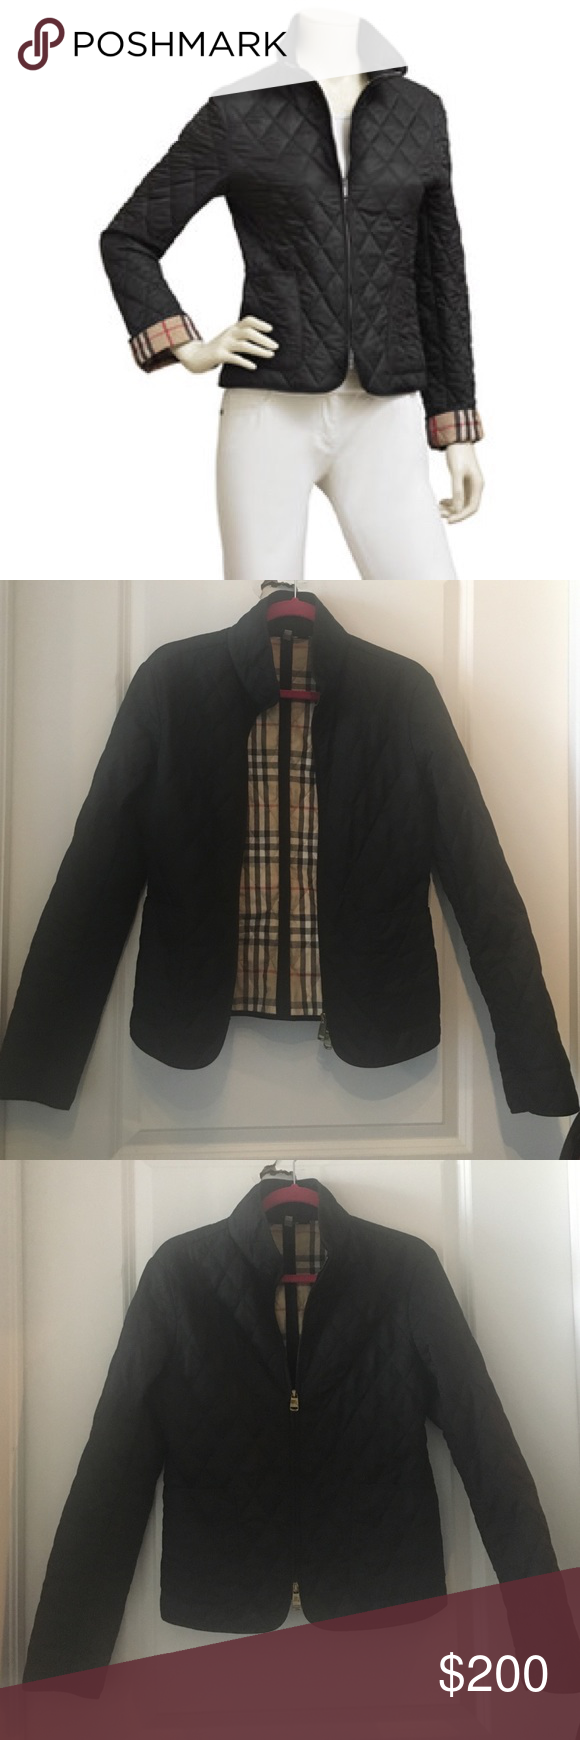 Burberry Zip Front Fitted Quilted Jacket Quilted Jacket Jackets Burberry Jacket